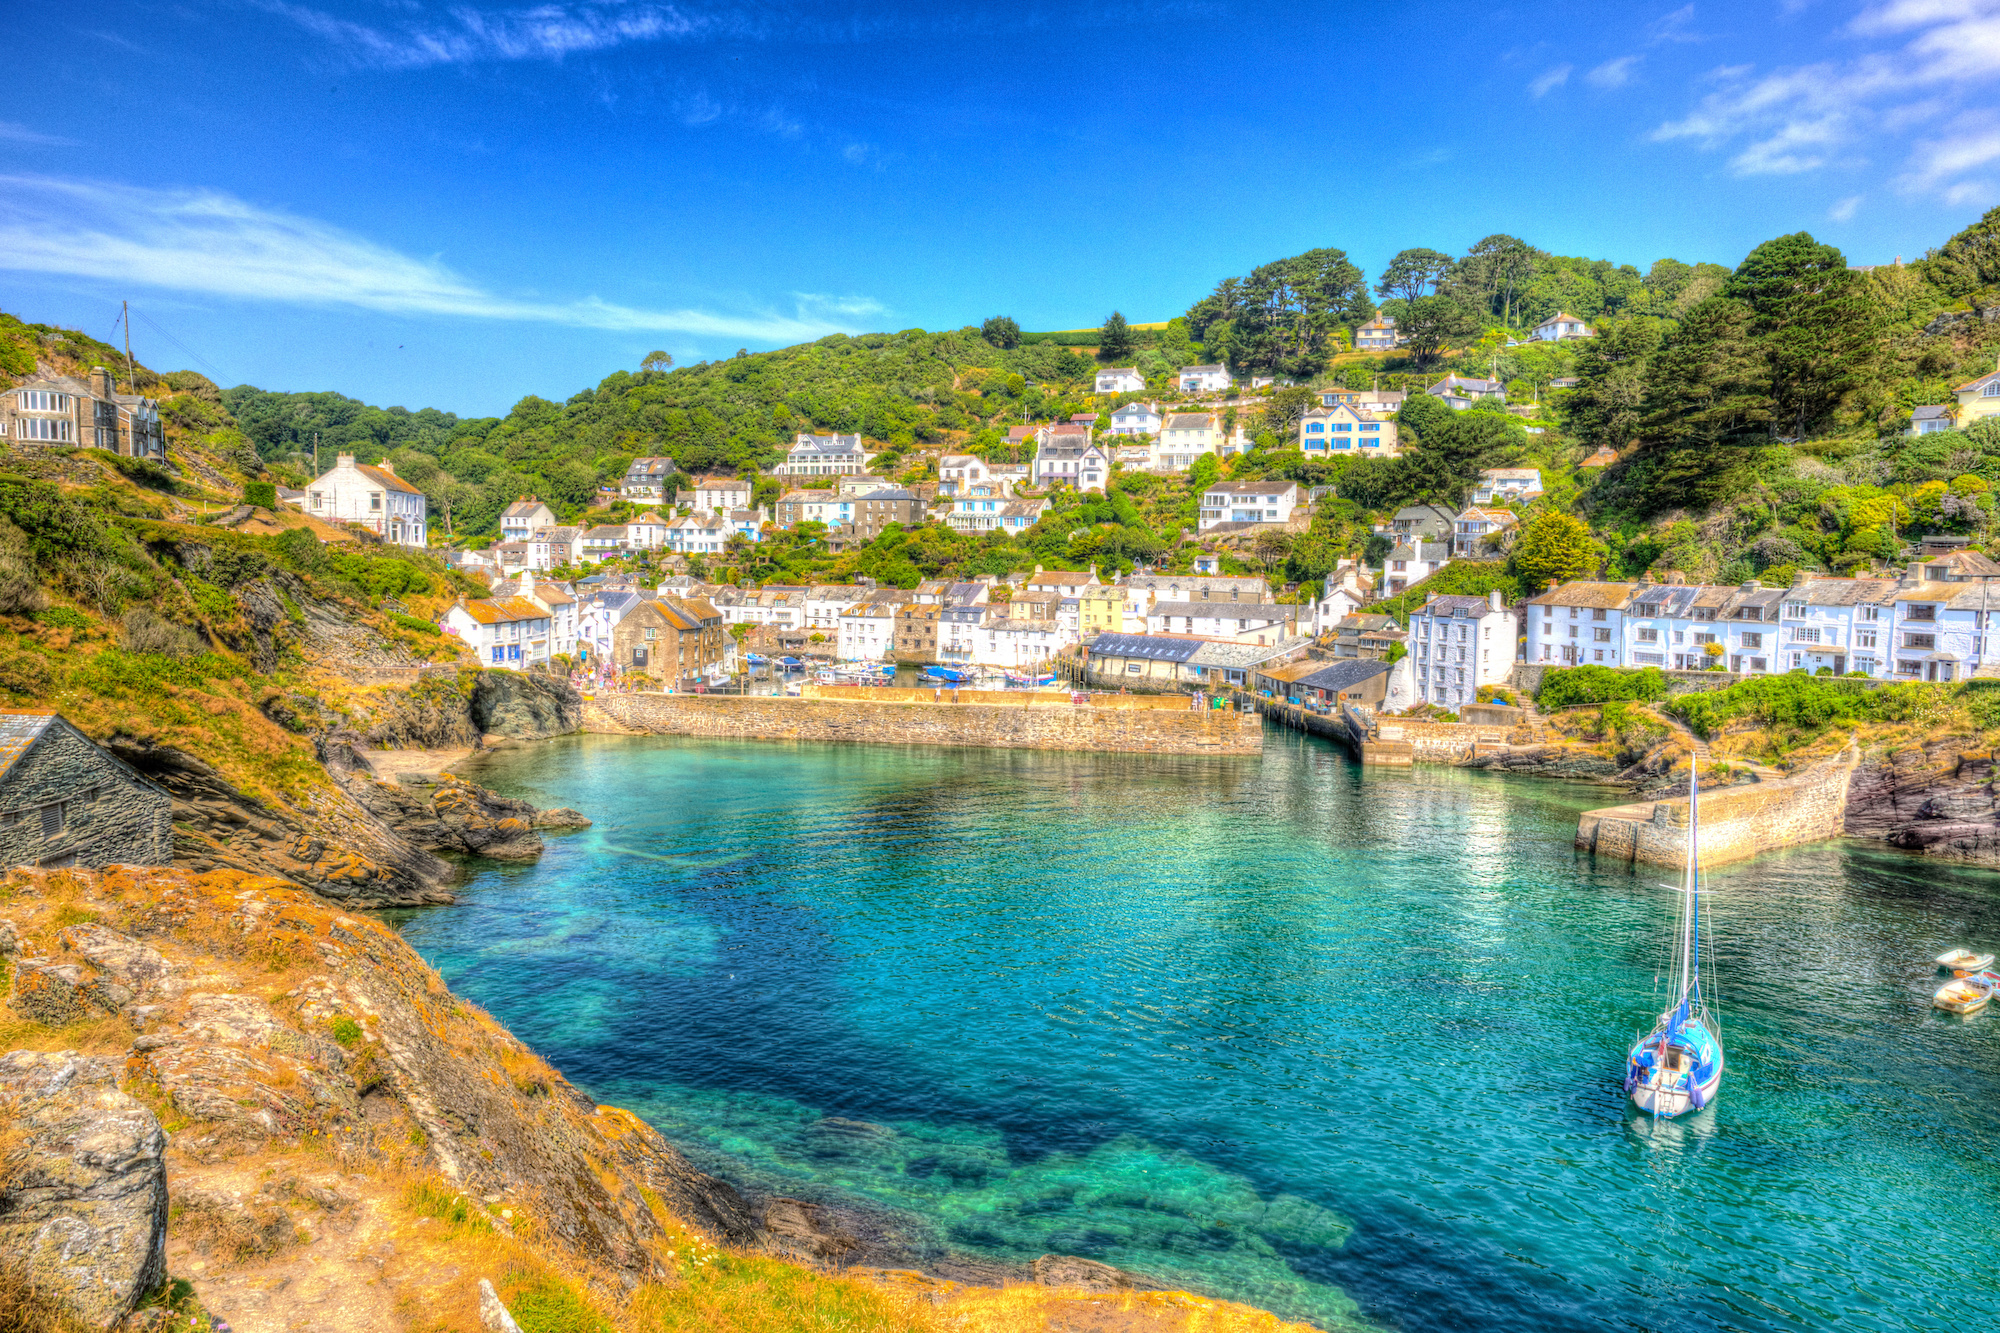 Things to Do and See in South West England